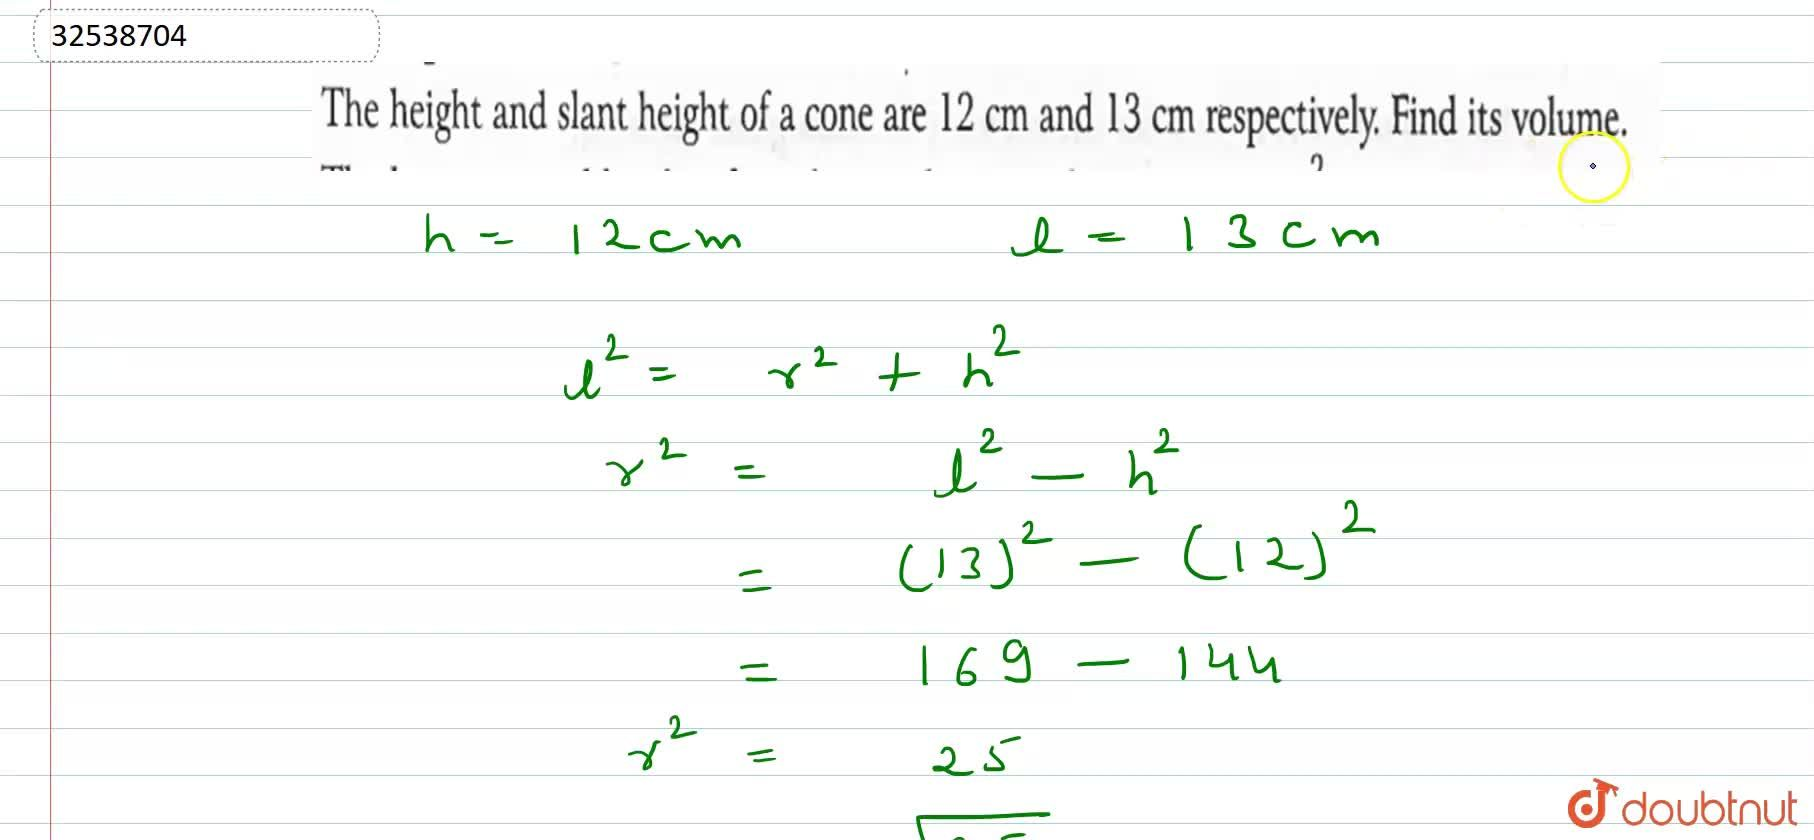 The height and slant height of a cone are 12 cm and 13 cm respectively. Find its volume.